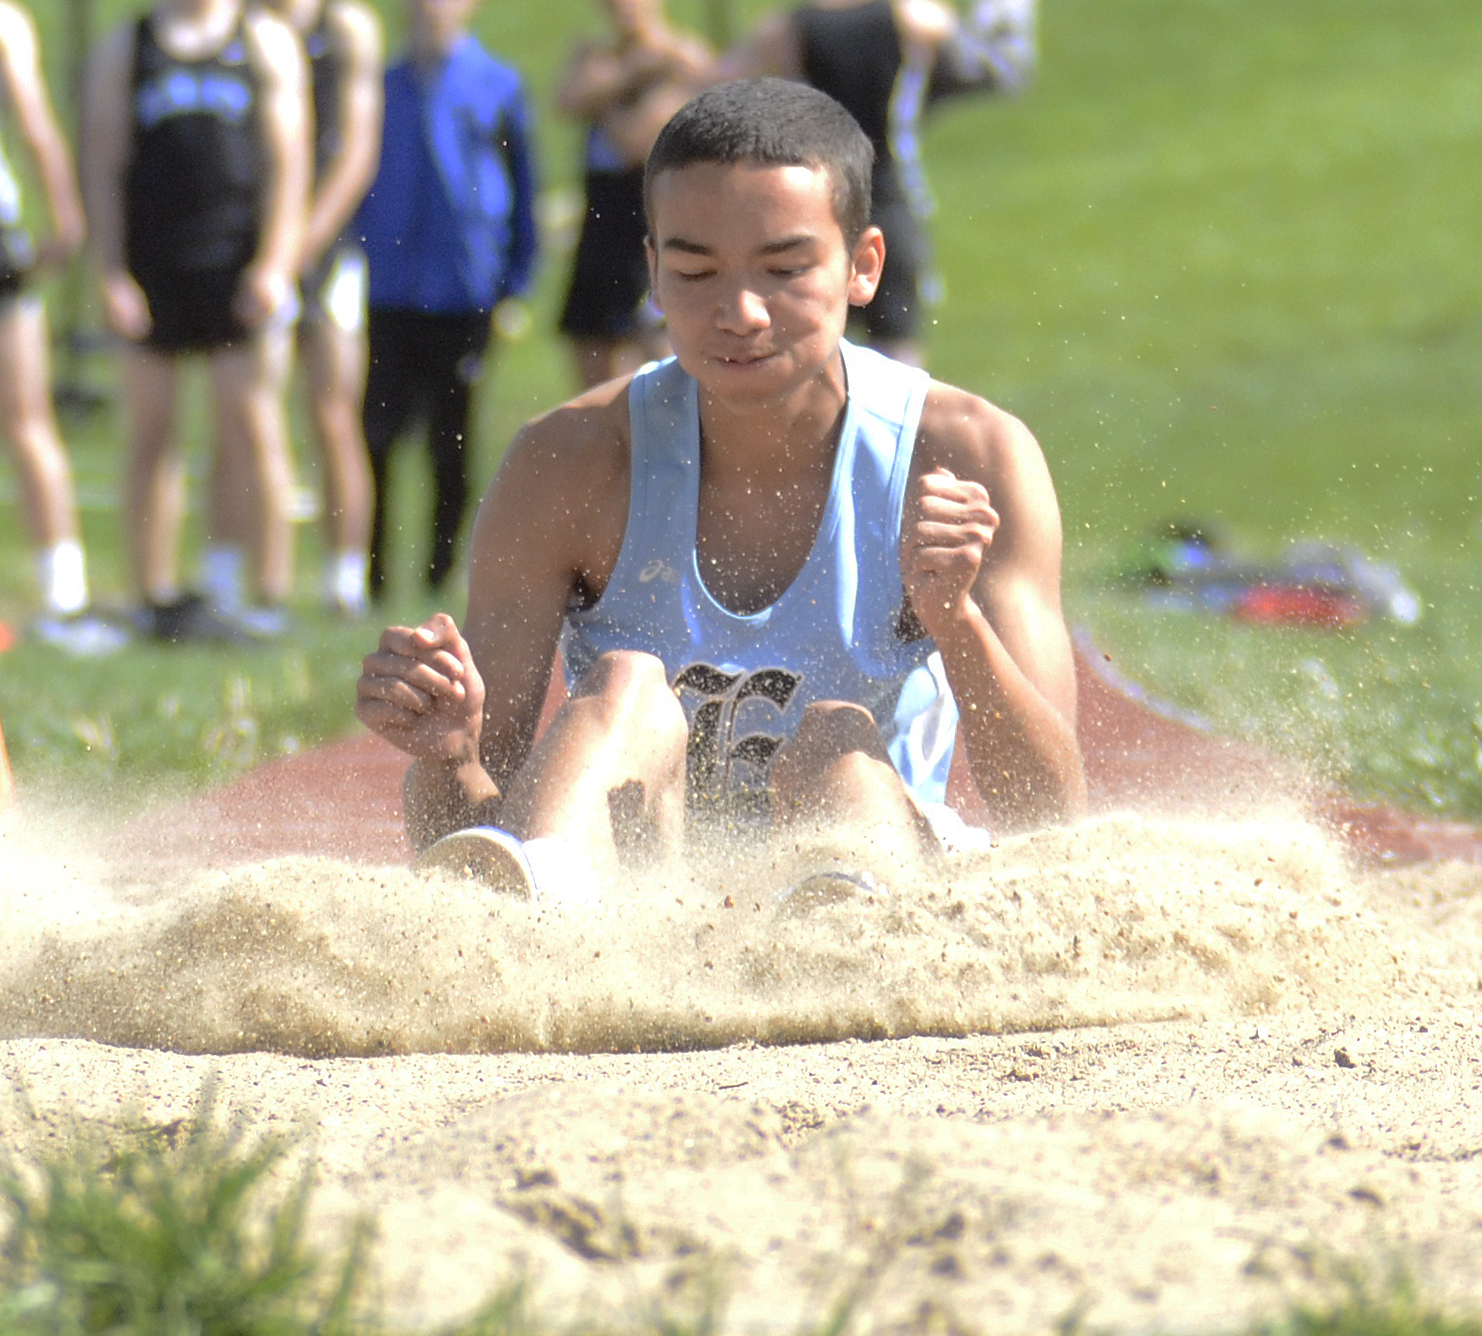 Gallery: JV Track Meet